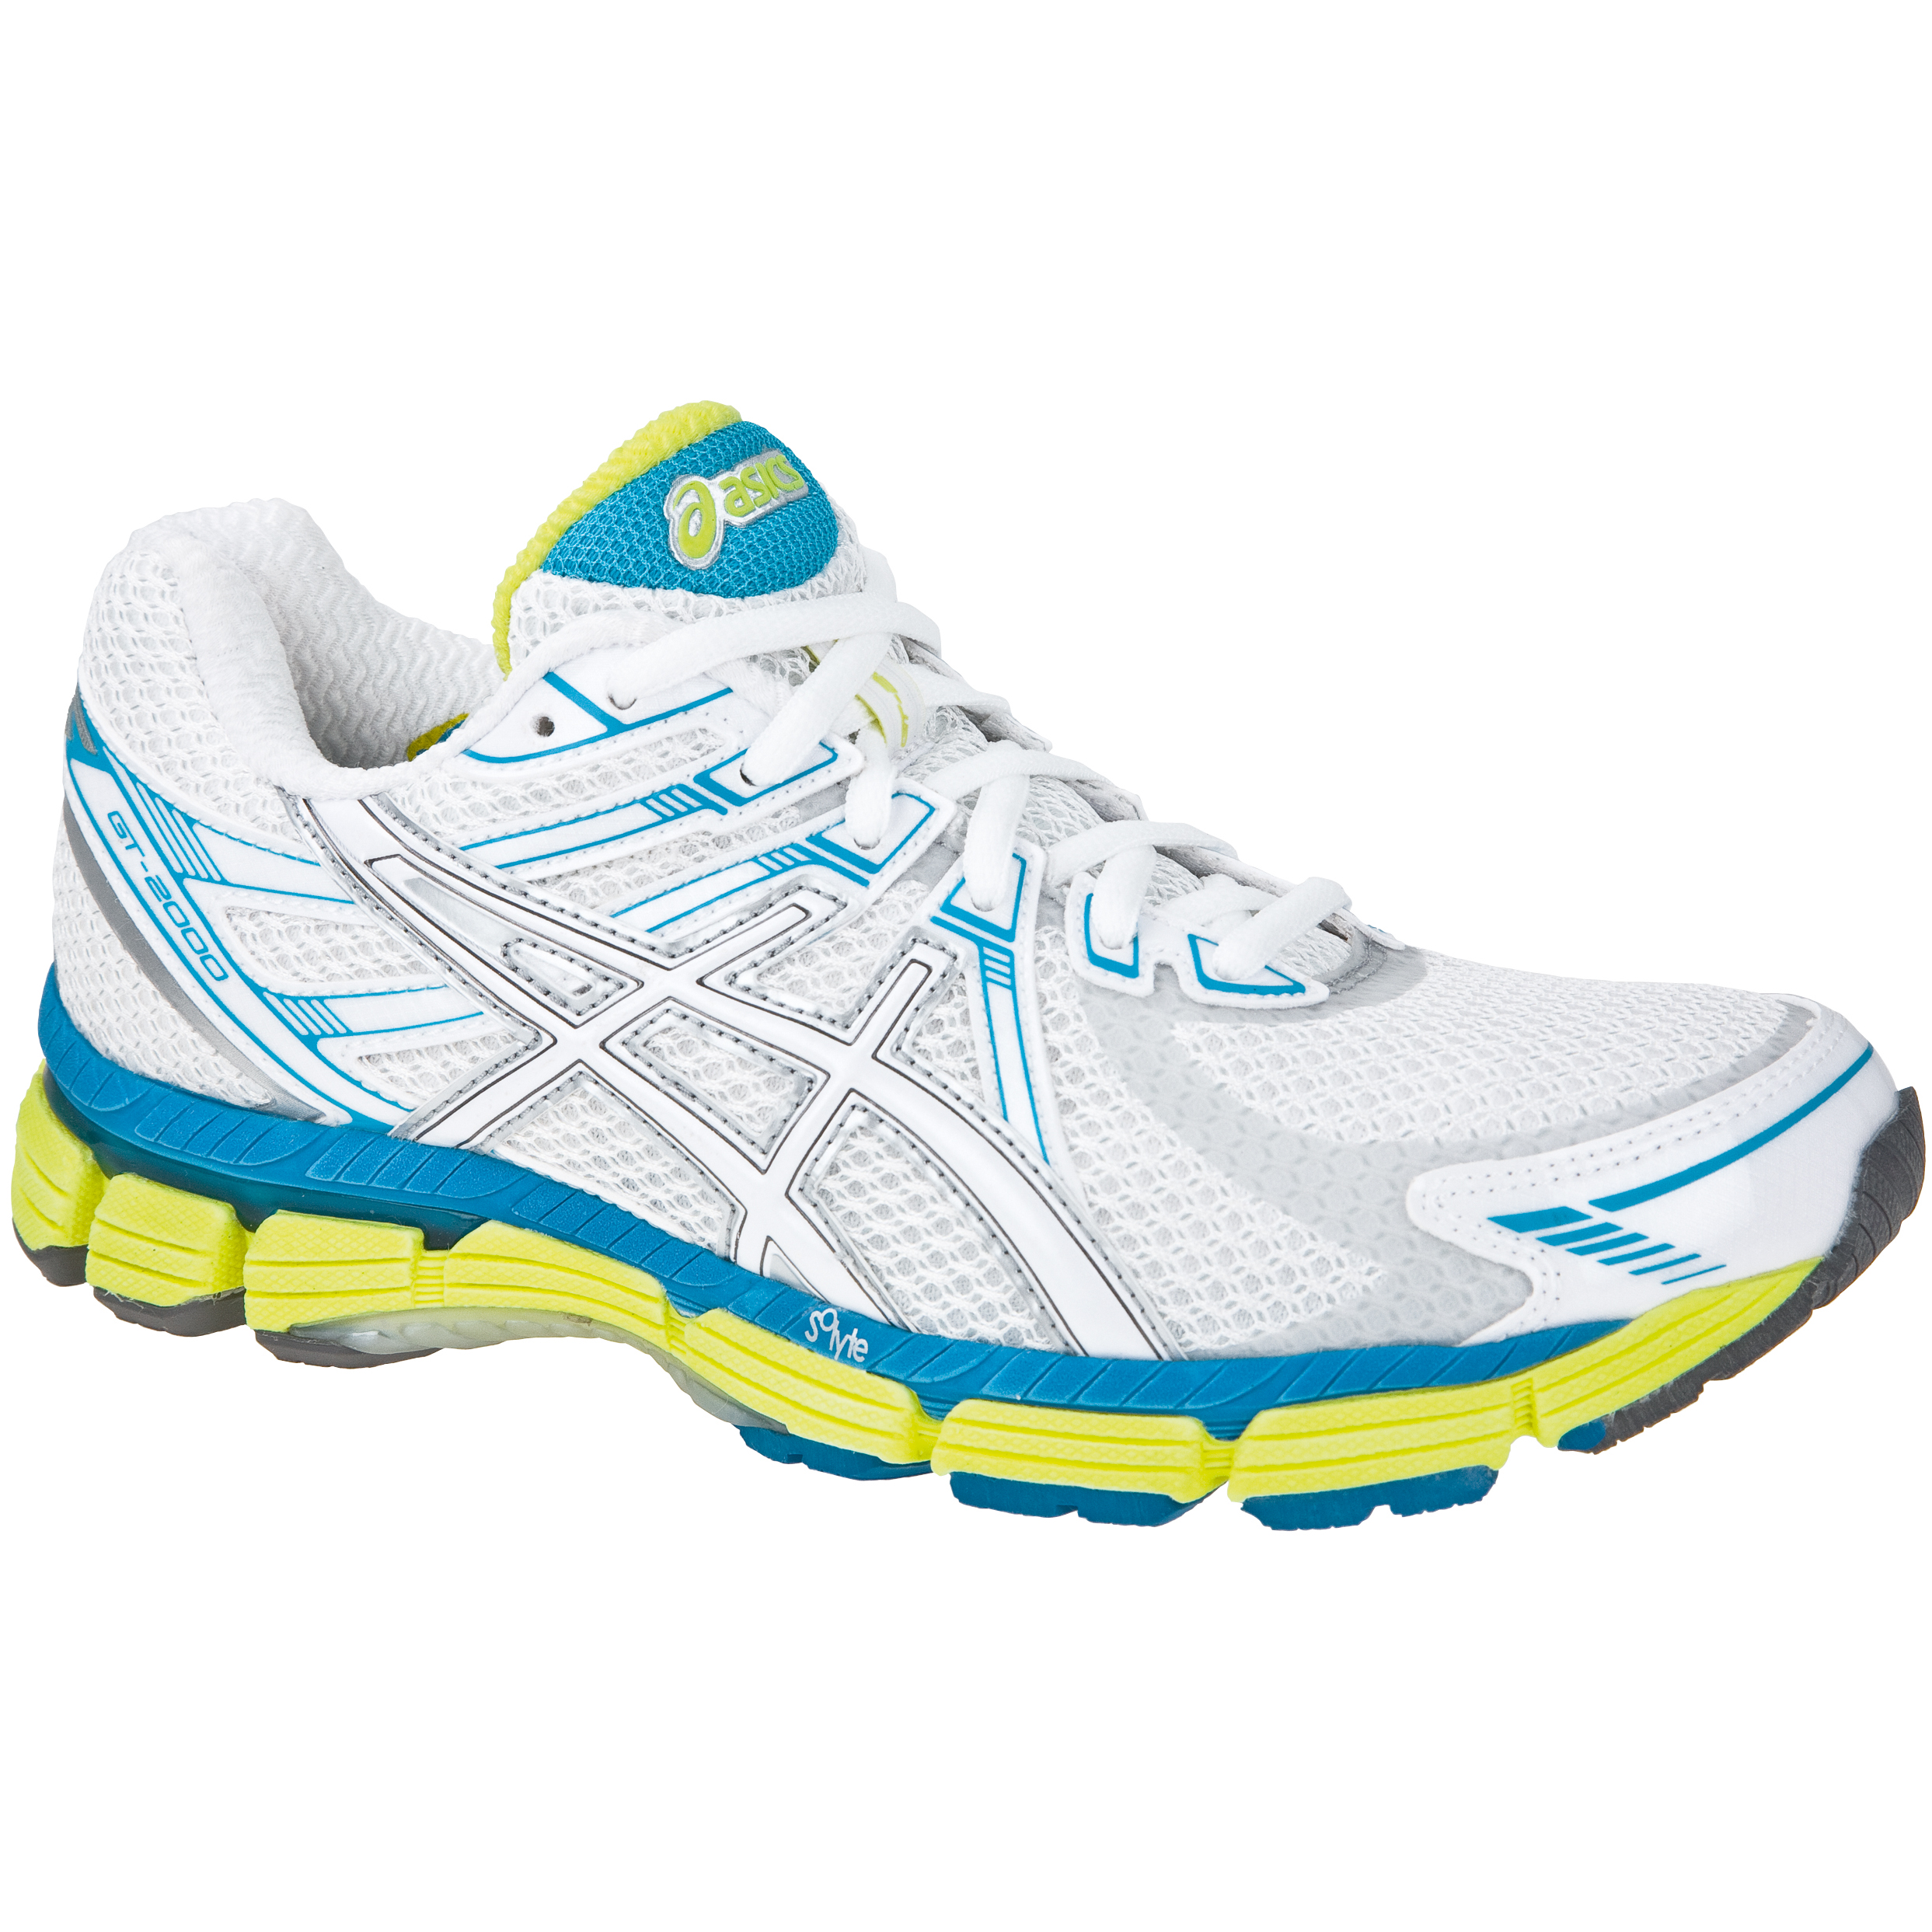 Motion Control Running Shoes for Women - Running Center - Shop Today